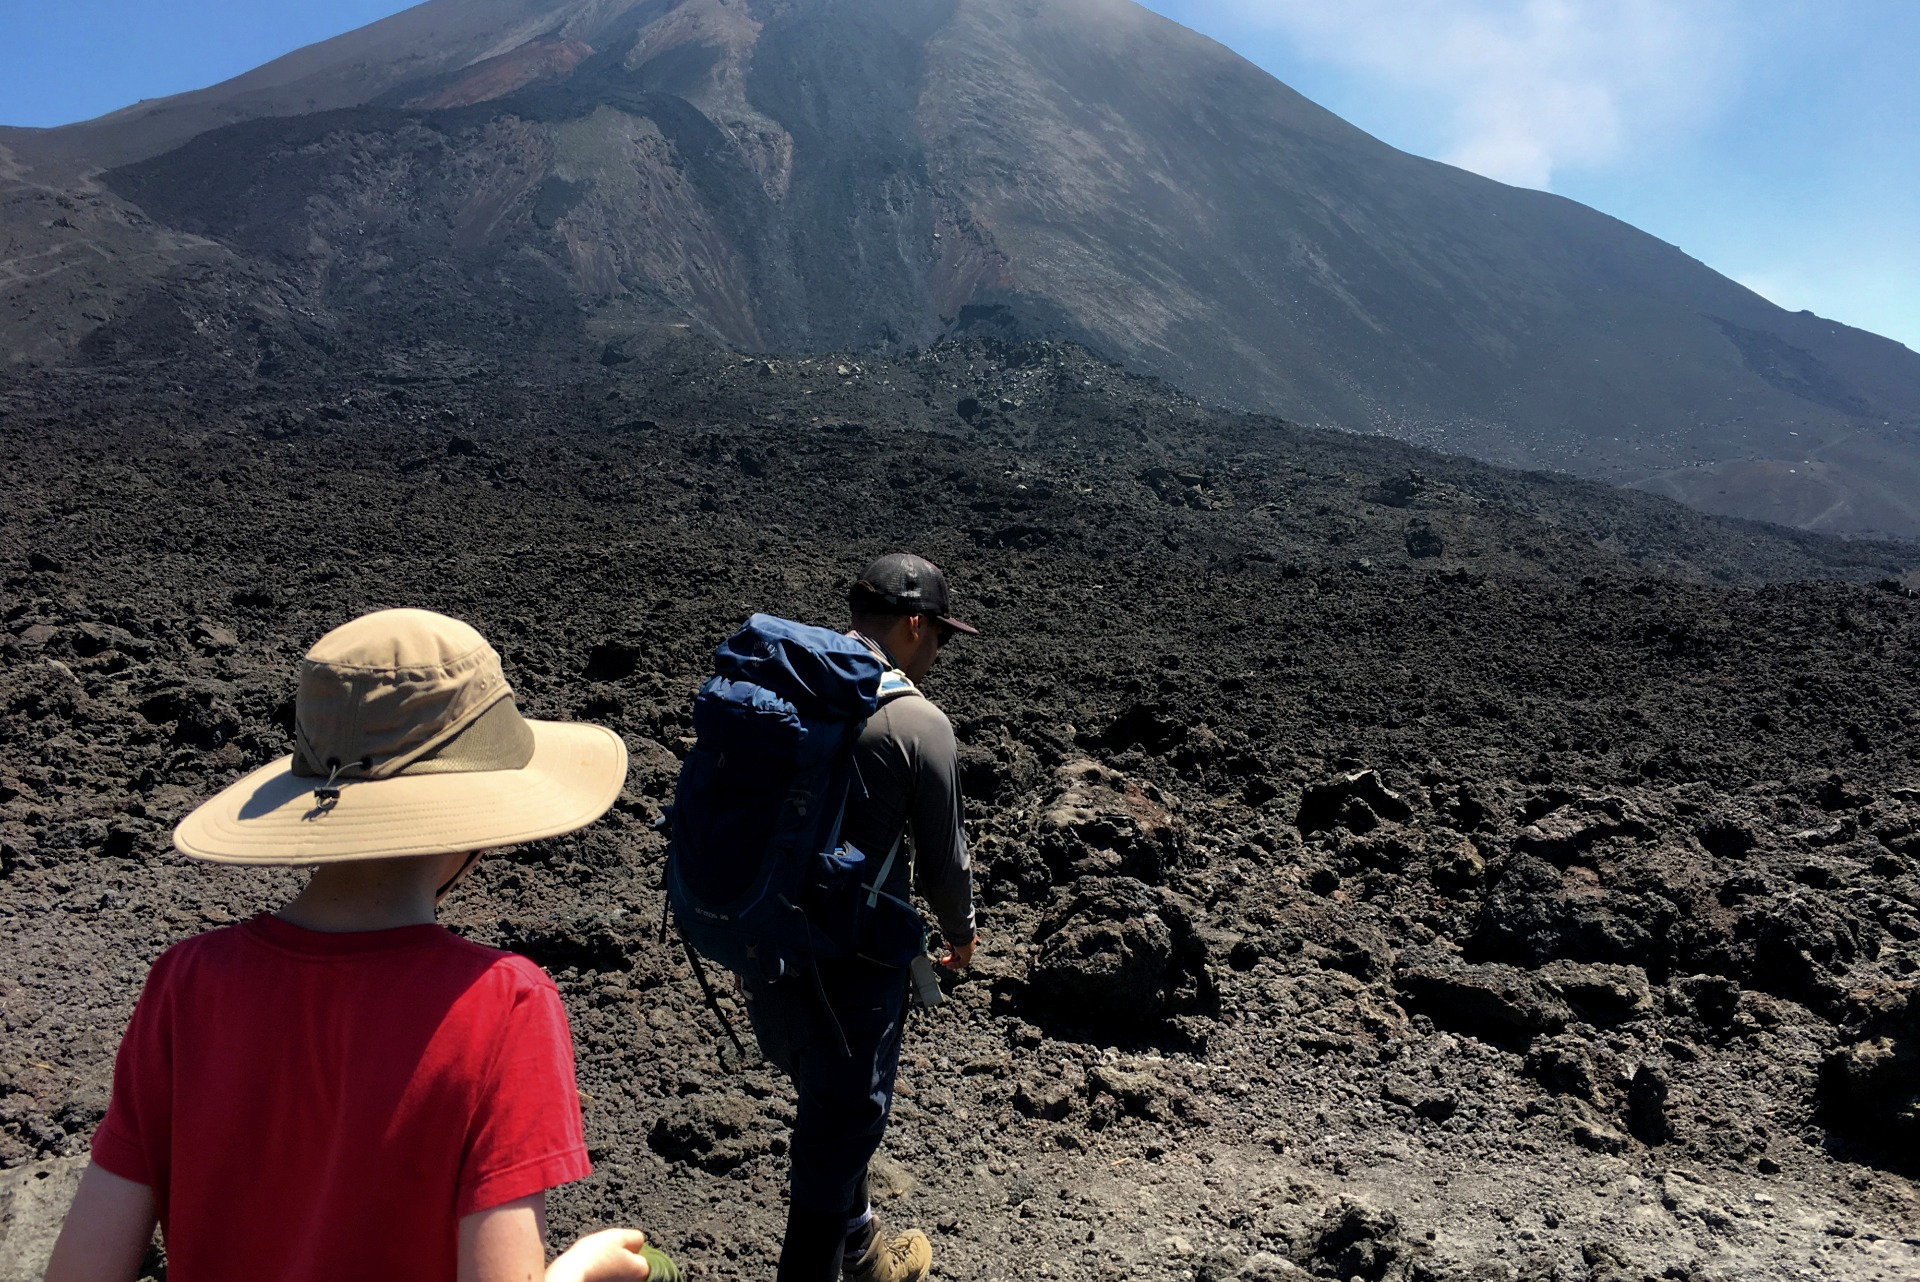 Hiking on lava in Guatemala